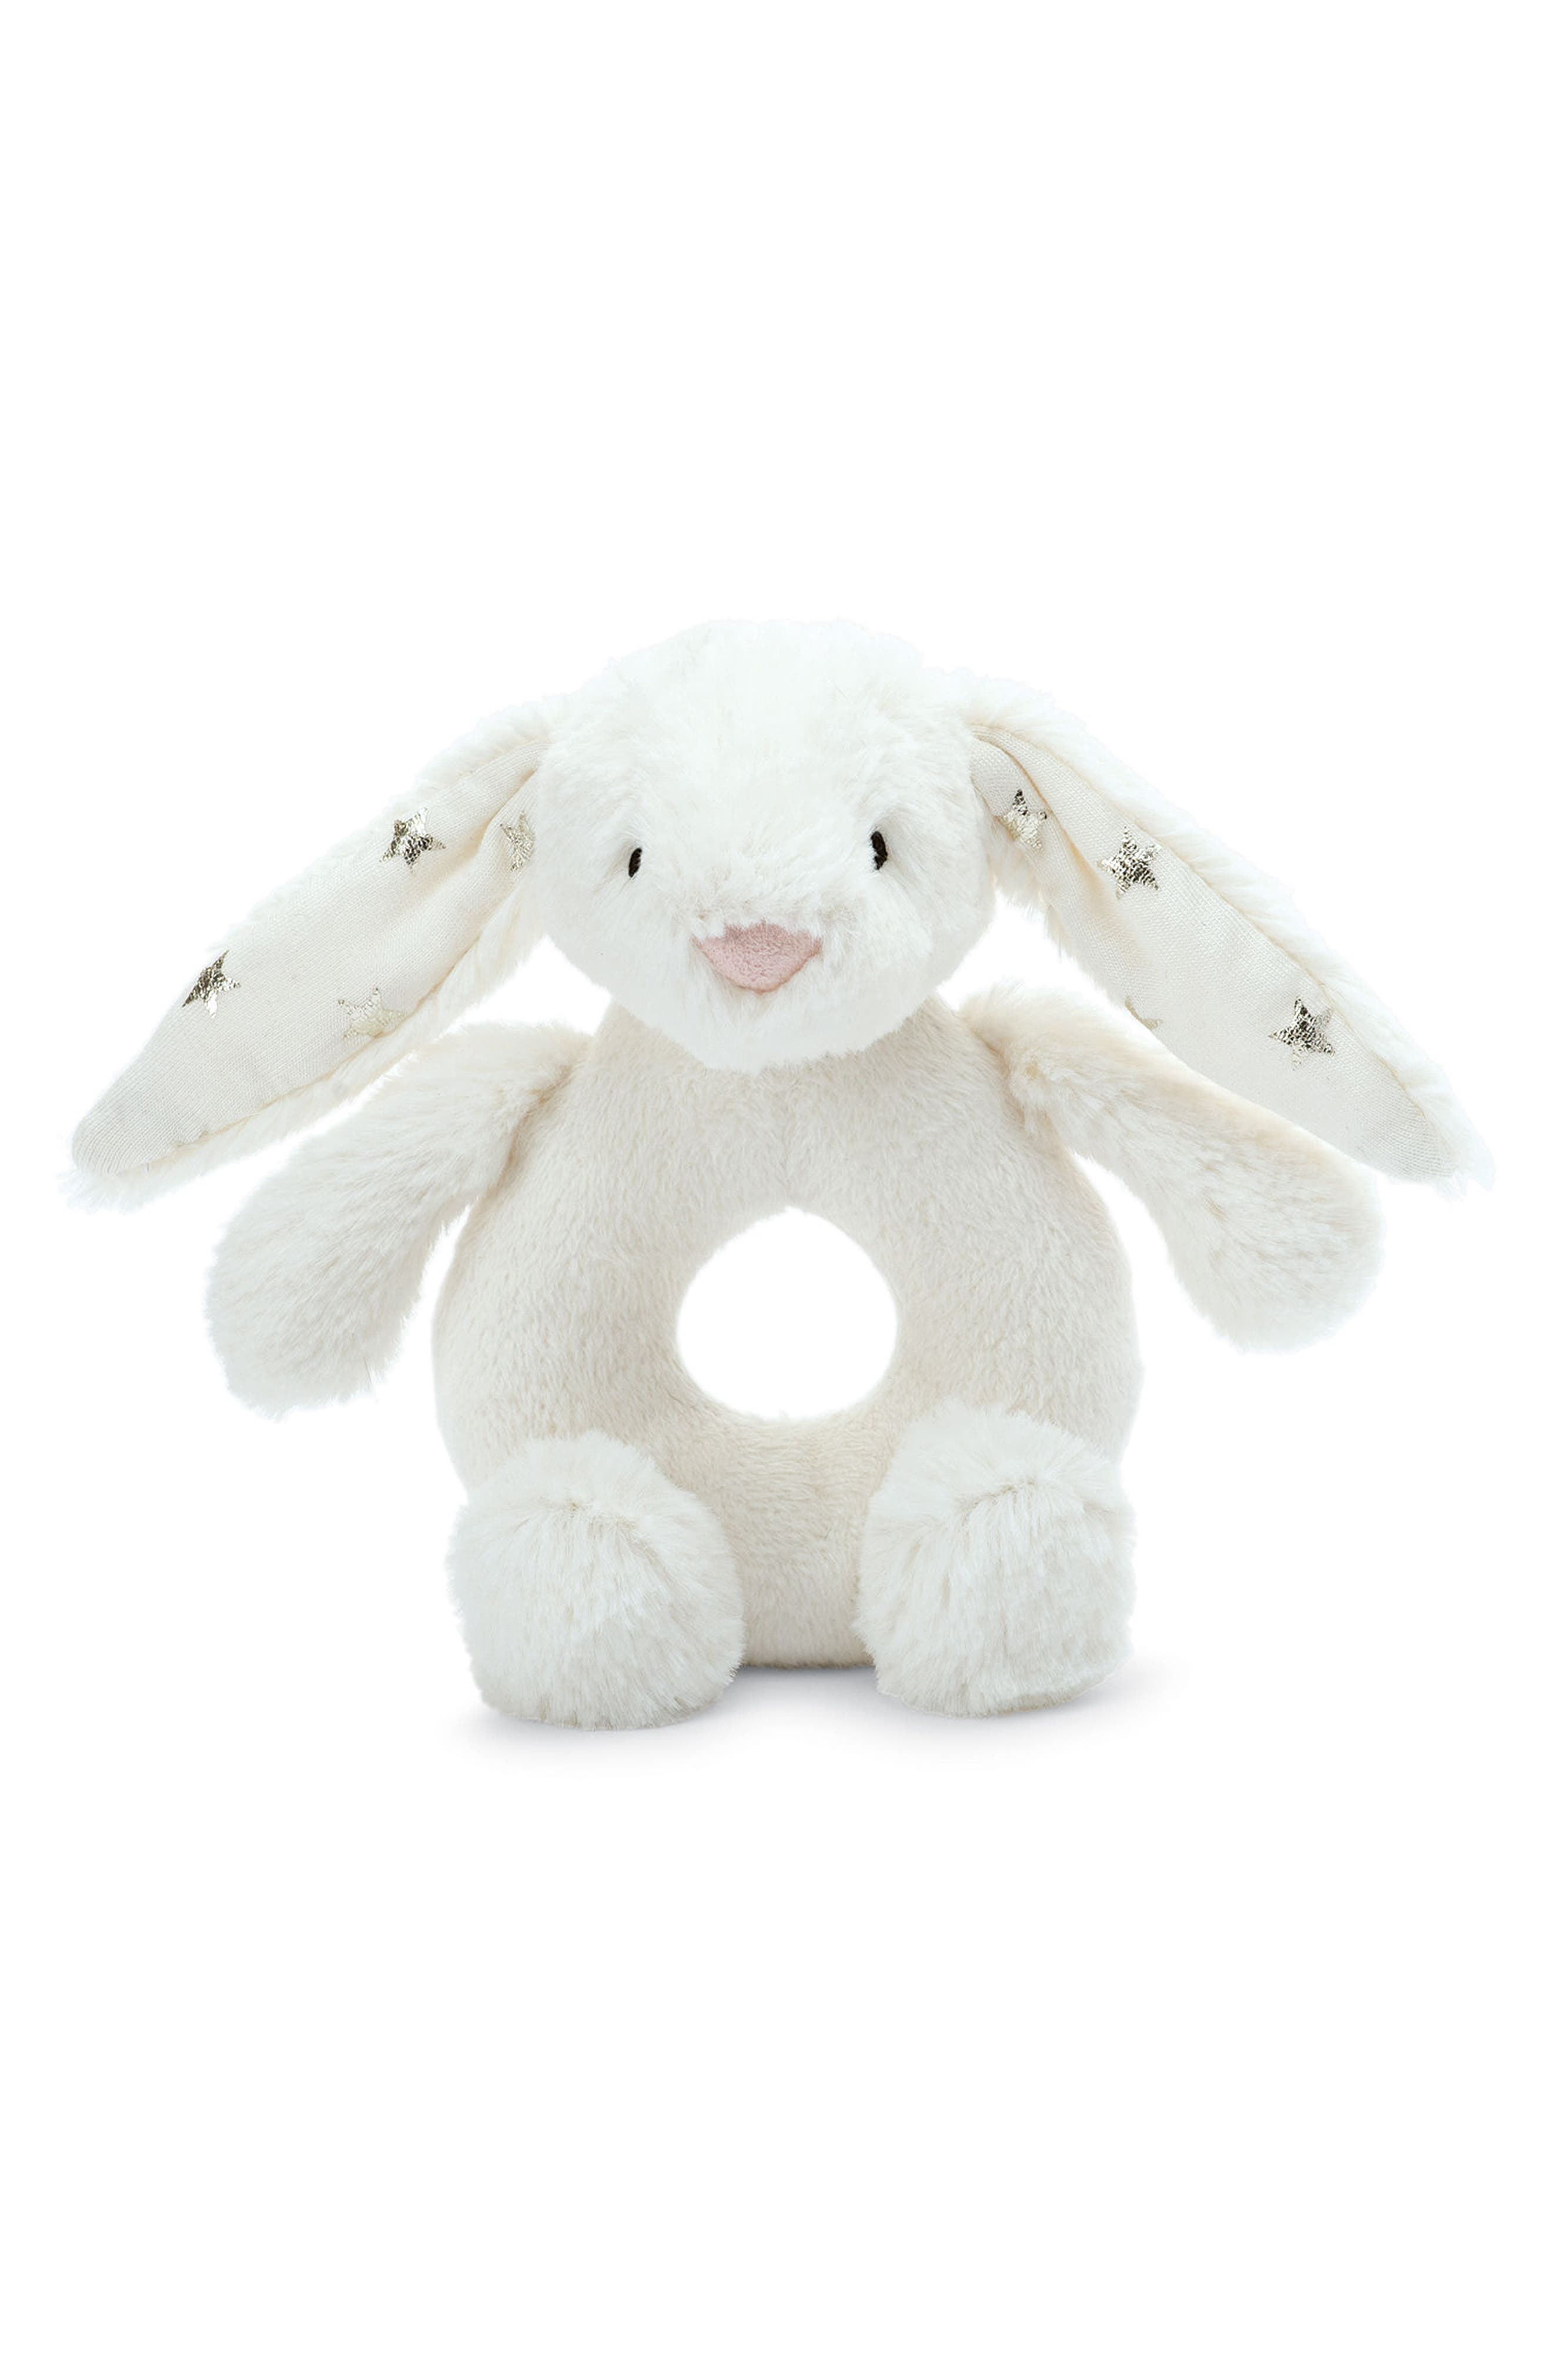 Alternate Image 1 Selected - Jellycat Twinkle Bunny Ring Rattle